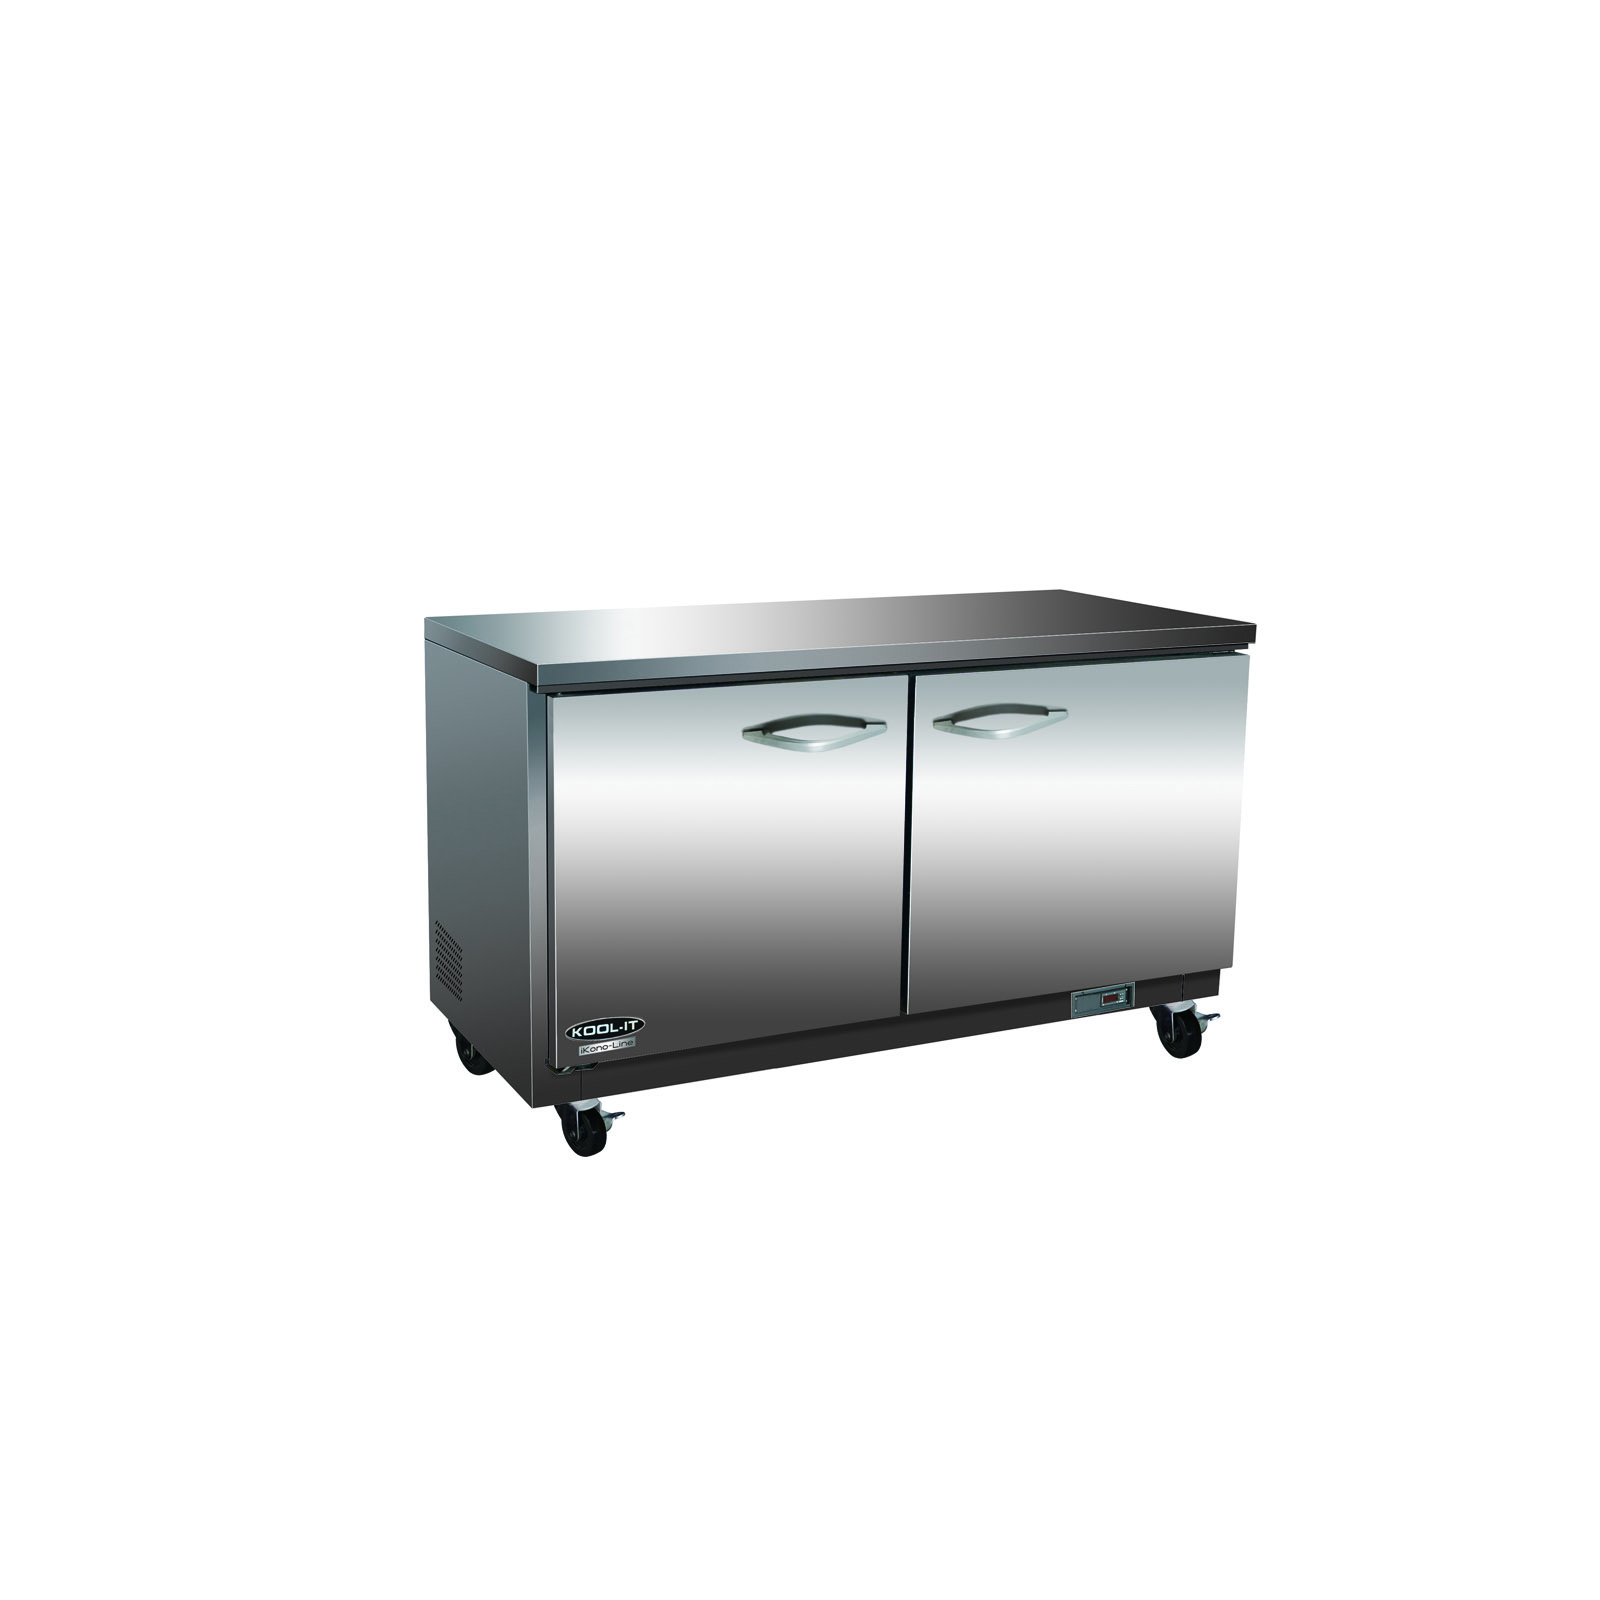 MVP Group LLC IUC61F freezer, undercounter, reach-in